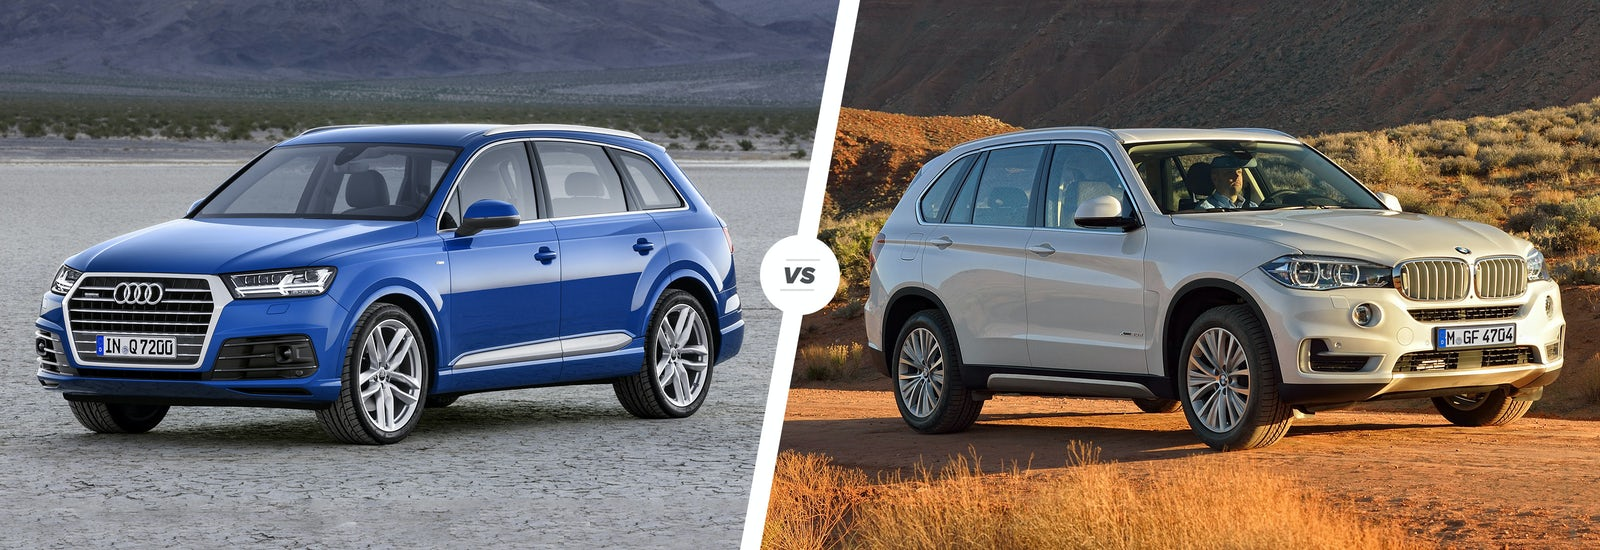 audi q7 vs bmw x5 luxury suv showdown carwow. Black Bedroom Furniture Sets. Home Design Ideas